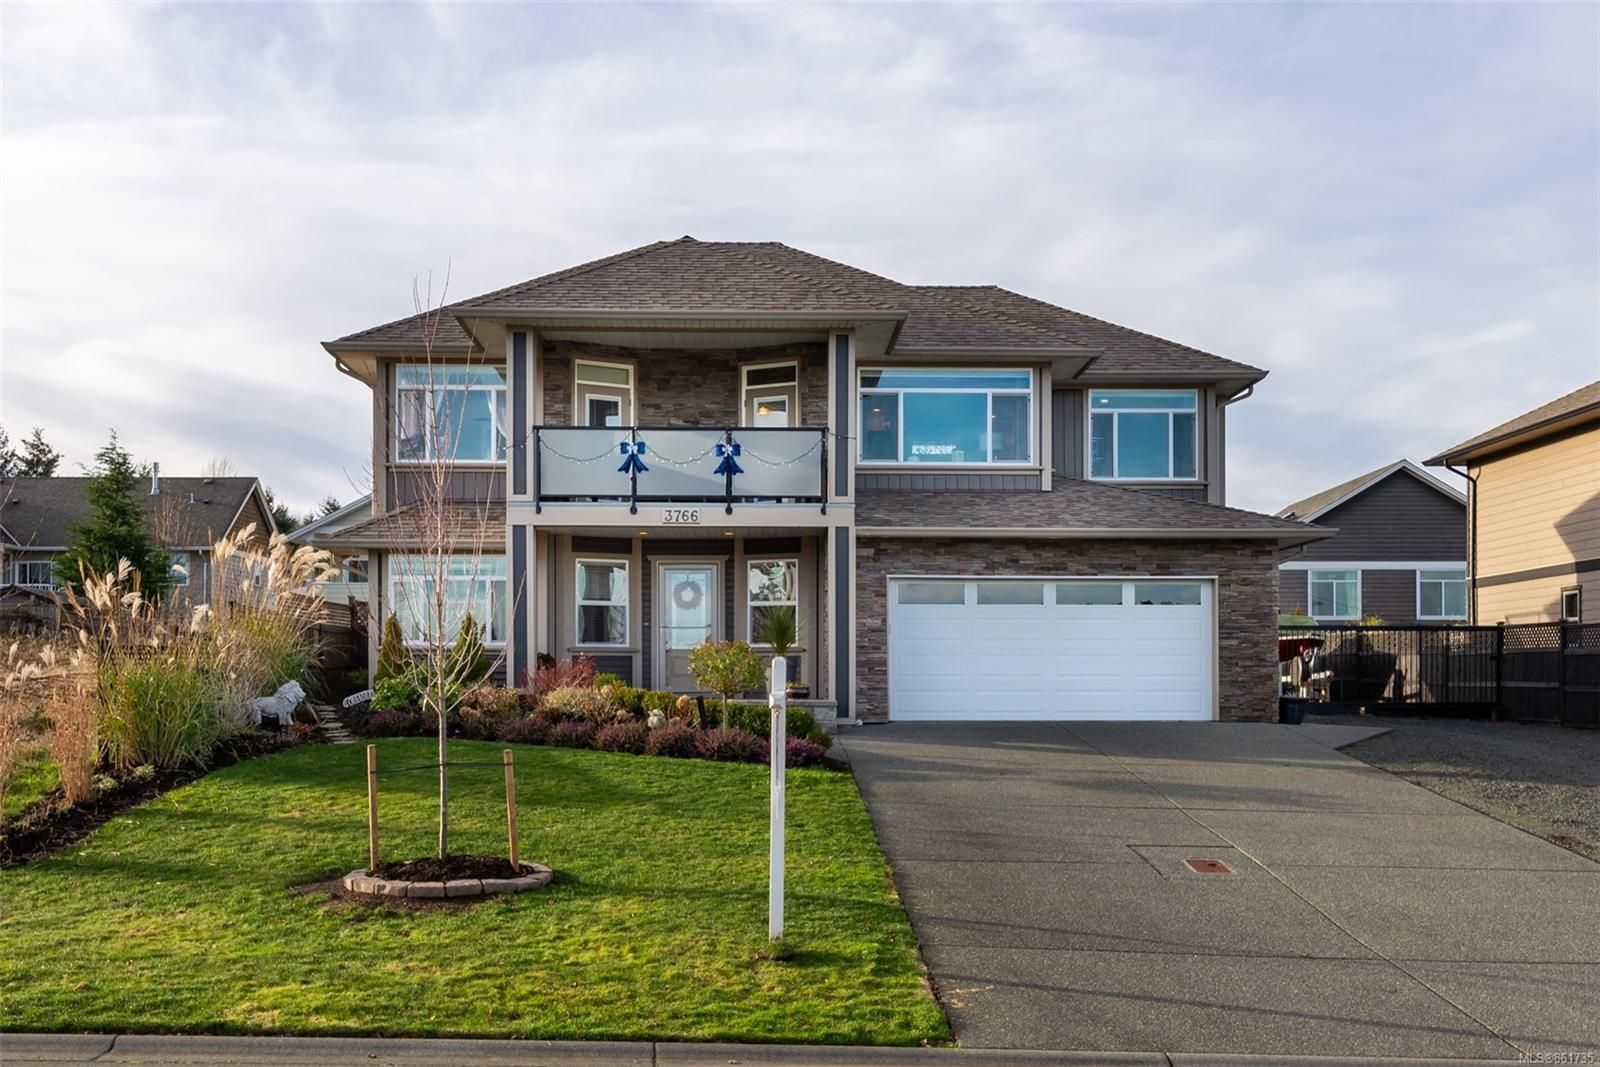 Main Photo: 3766 Valhalla Dr in : CR Willow Point House for sale (Campbell River)  : MLS®# 861735